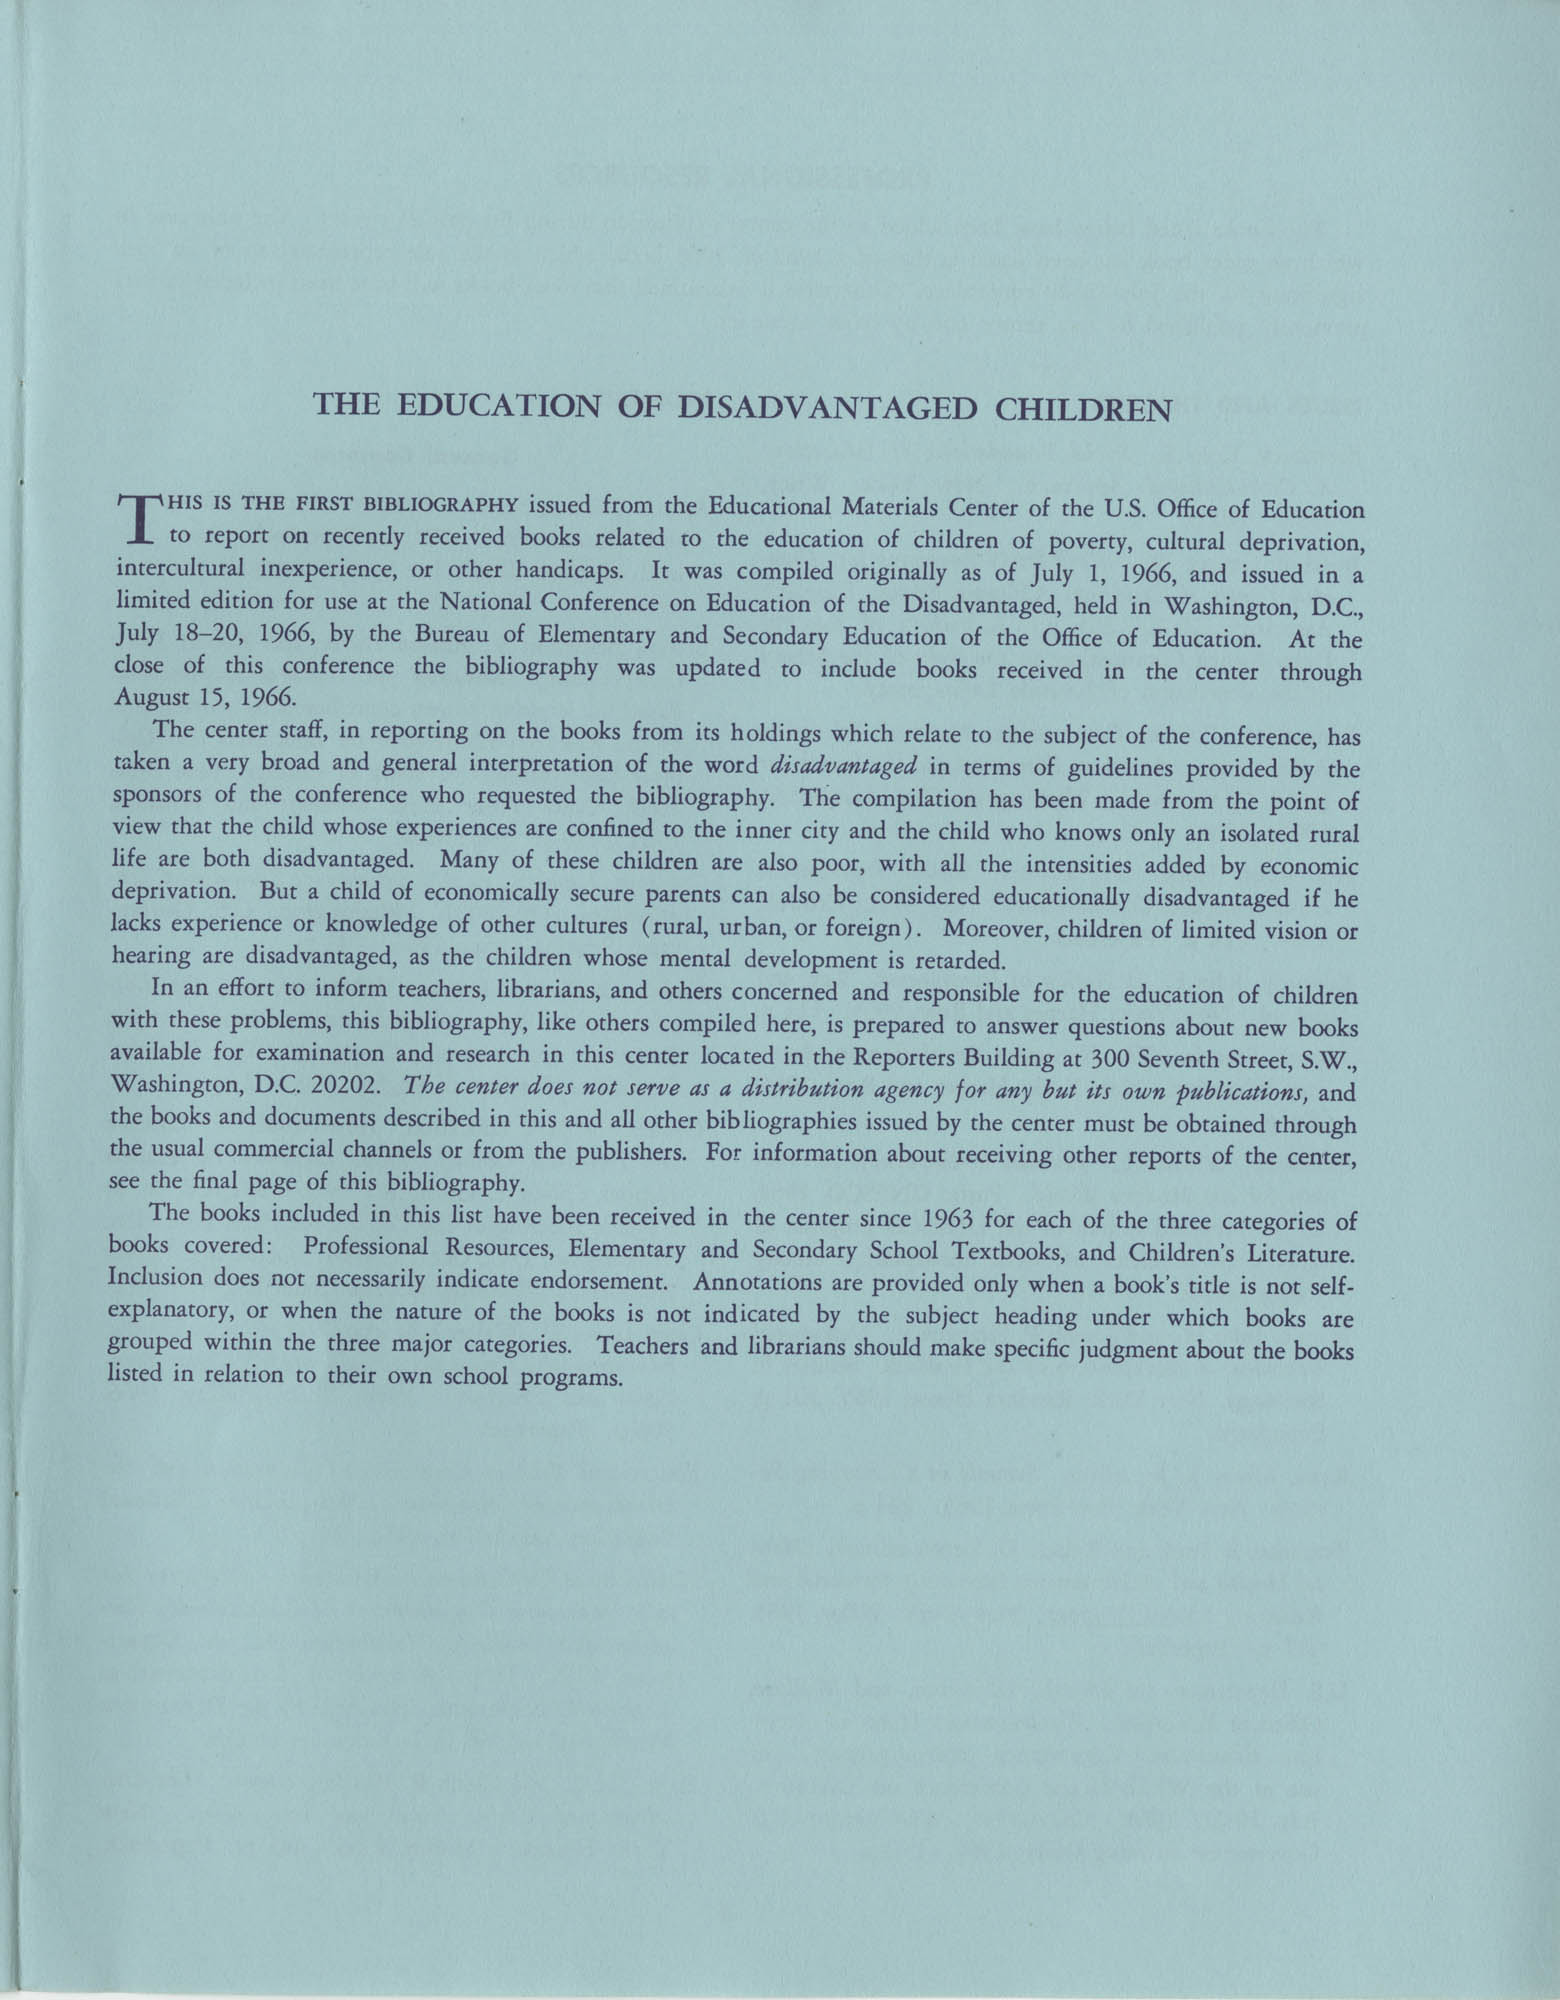 The Education of Disadvantaged Children, A Bibliography, Page 1